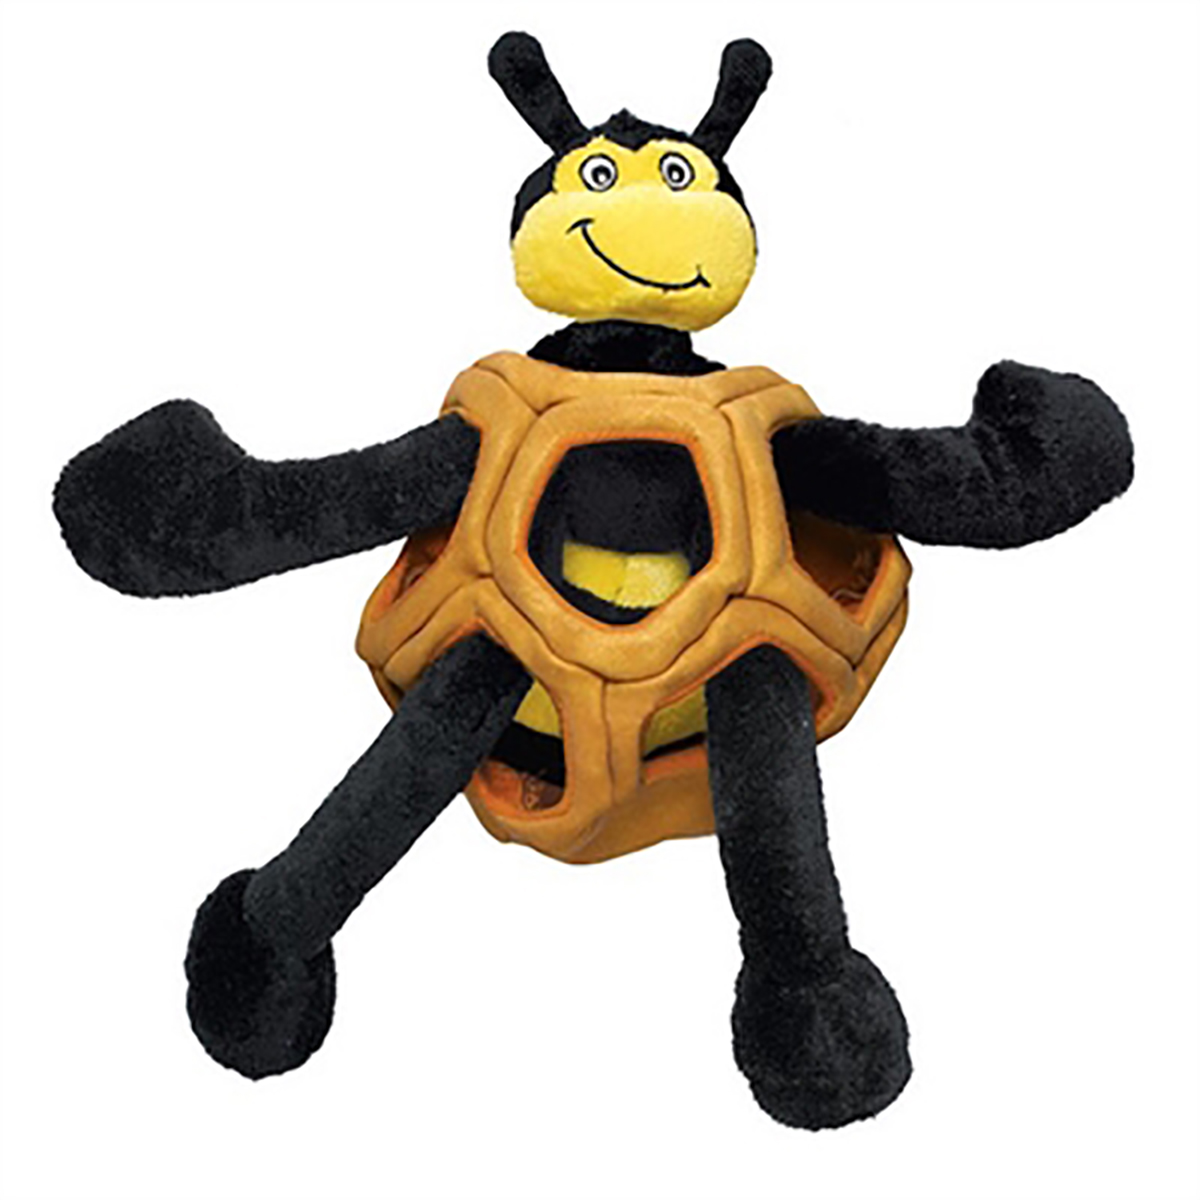 KONG Puzzlements Dog Toy - Bee